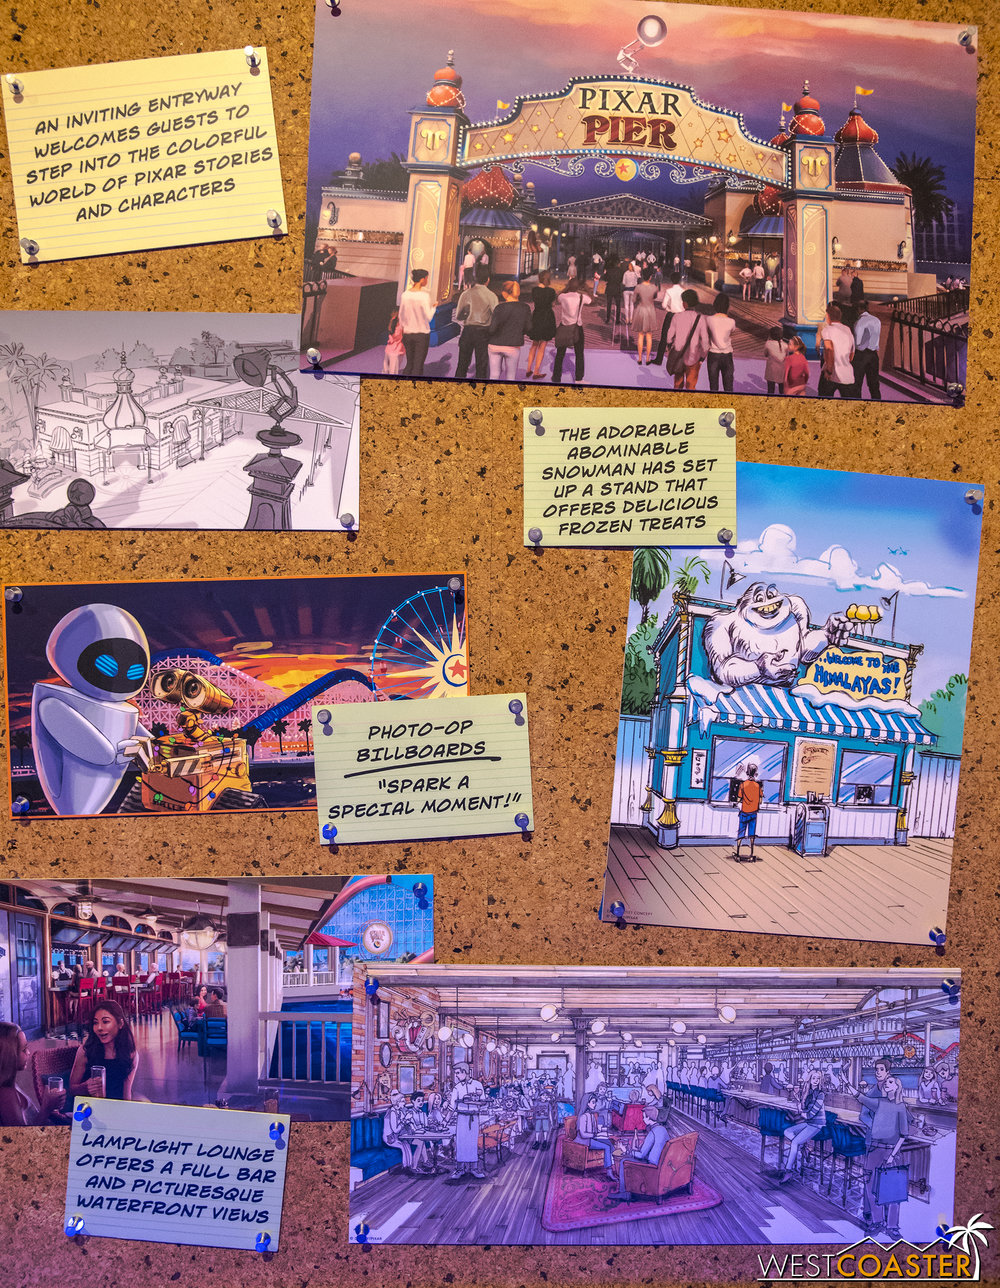 Notes tell how various theming elements contribute to the overall story being told.